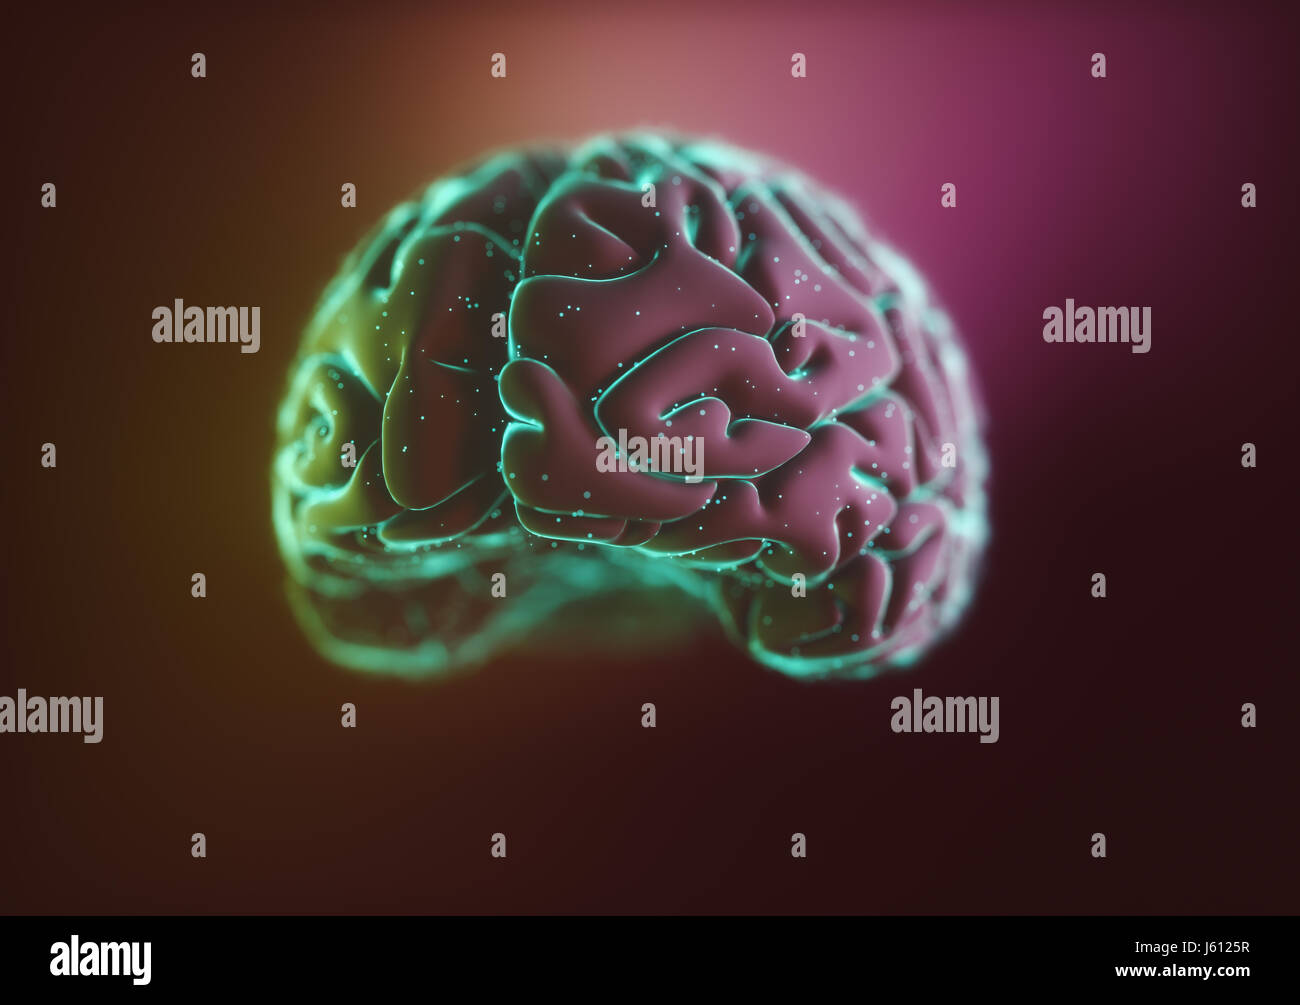 3D illustration. Stylized image of a brain inside a liquid with air bubbles around. Stock Photo